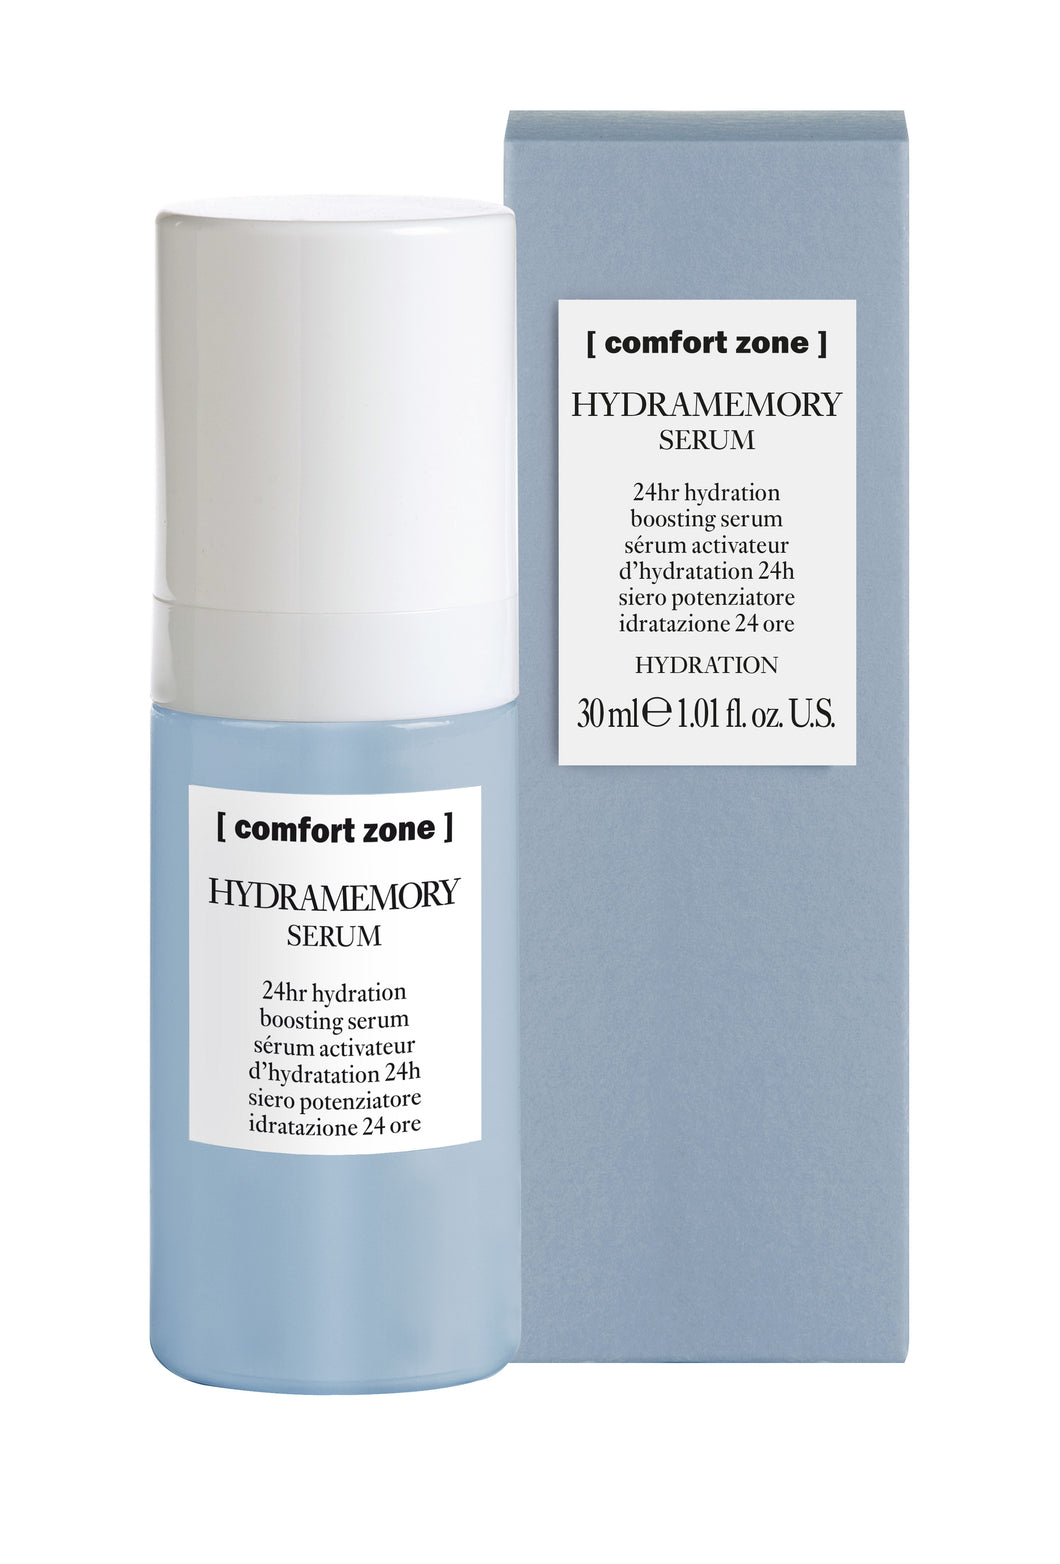 HydramemorySerum_30ml_BeautyStudio11.jpg